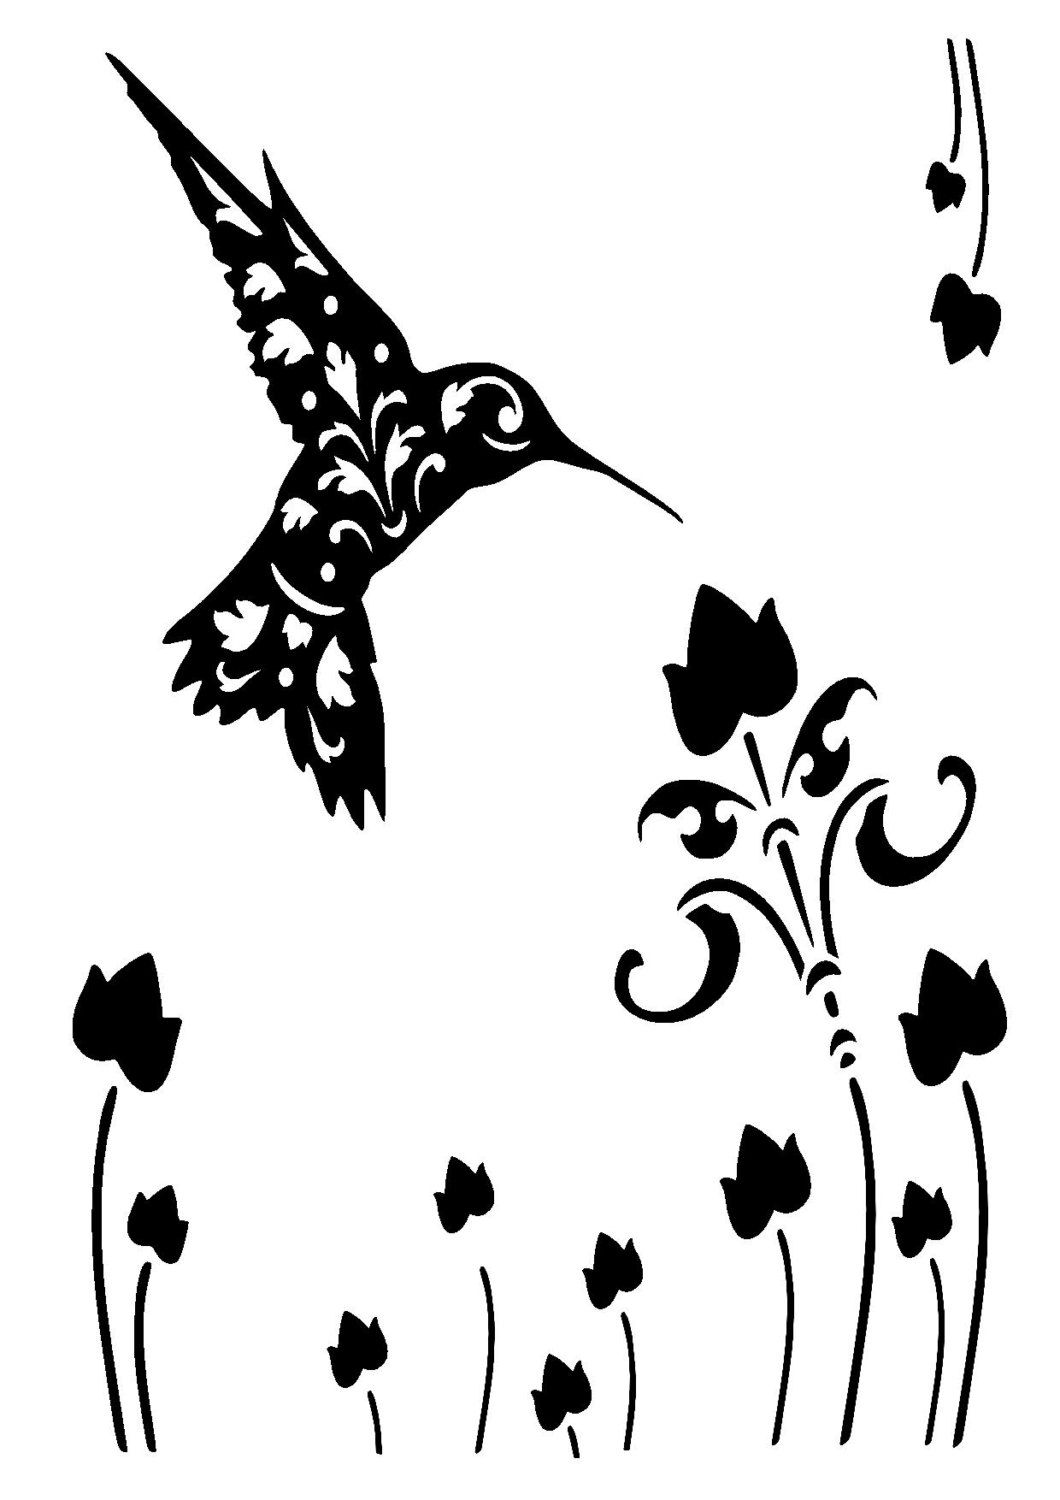 8 3 11 7 Vintage Hummingbird Stencil And Template A4